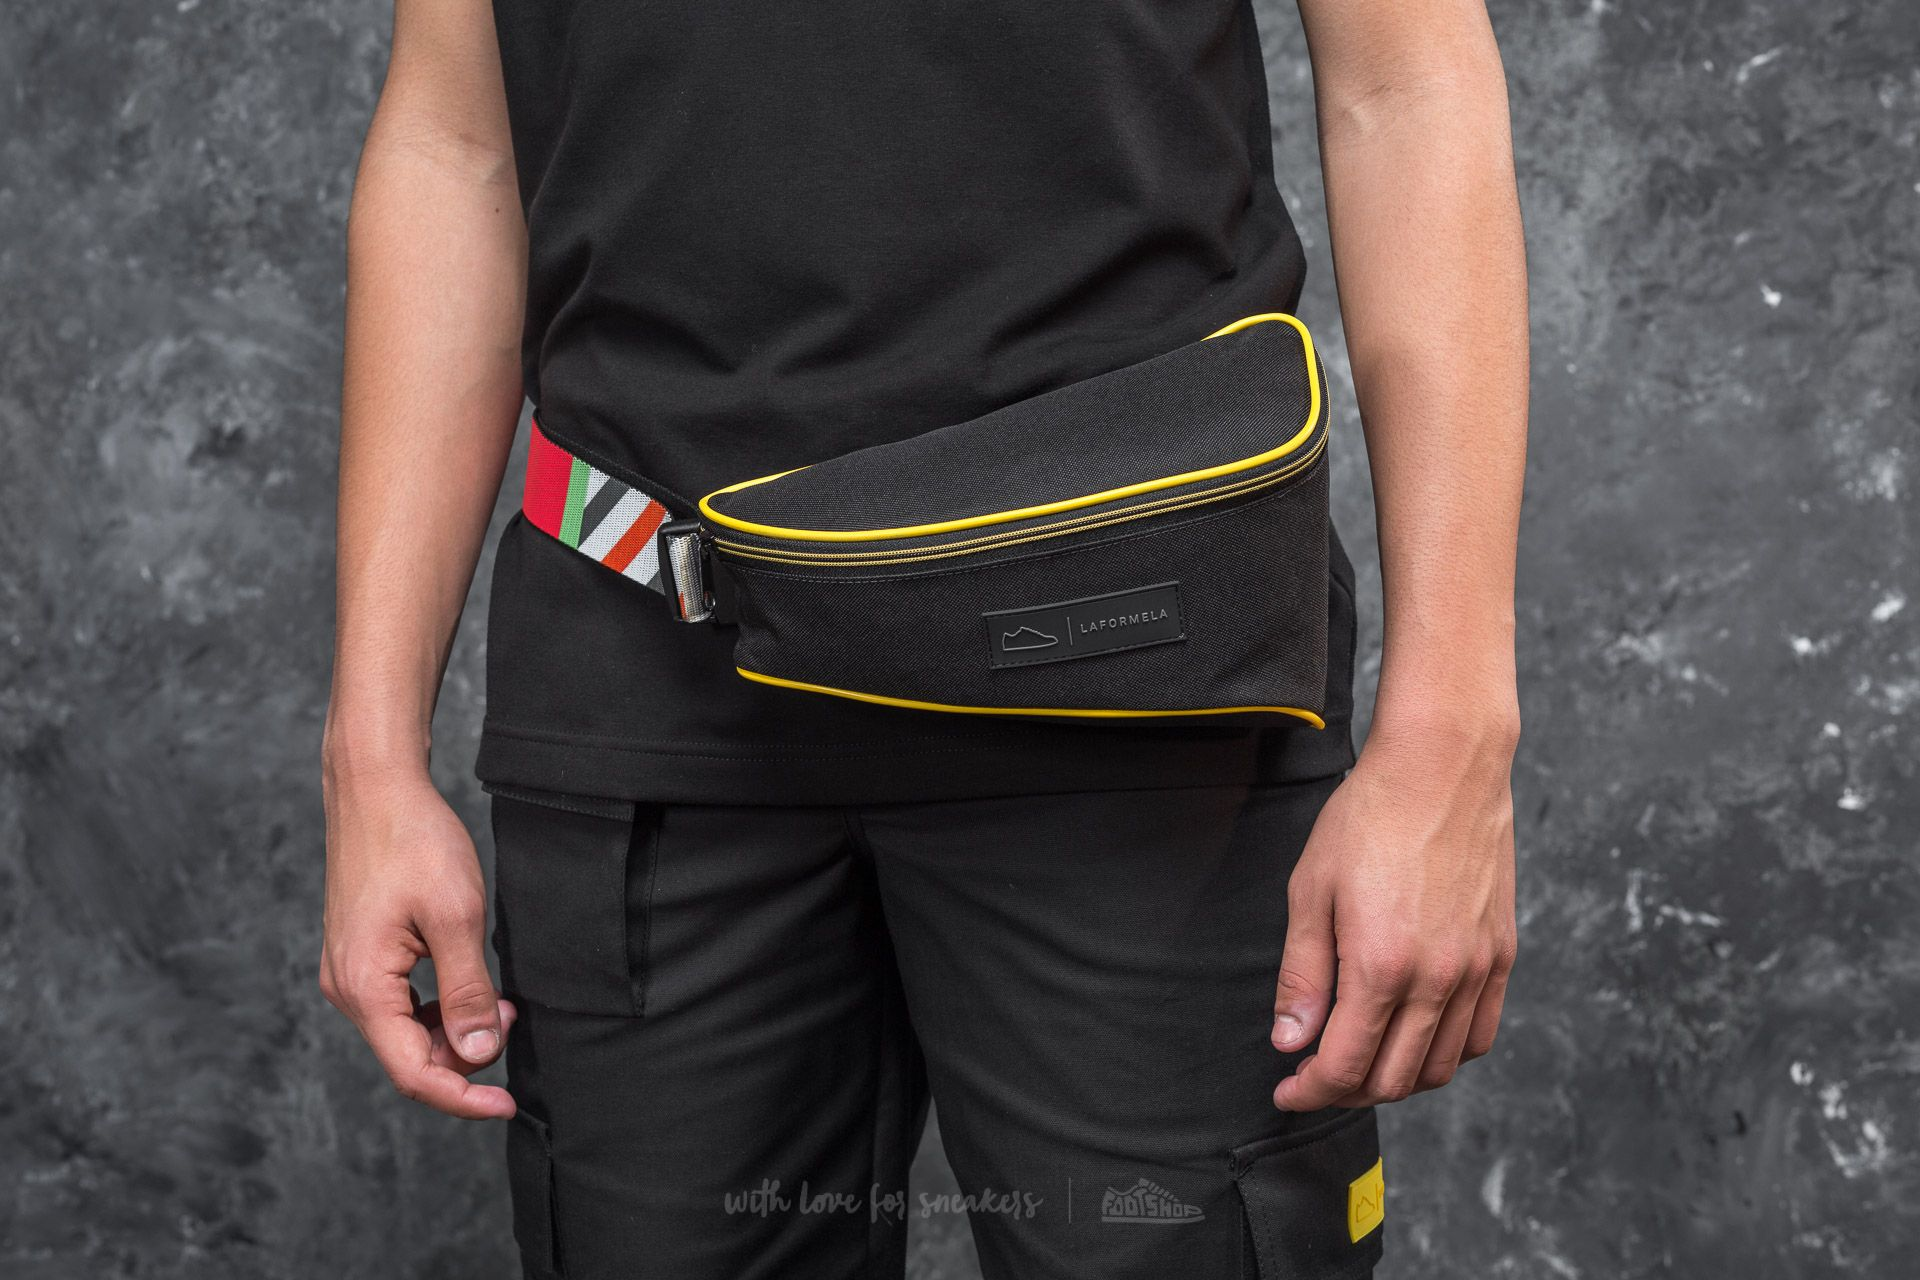 Footshop x LAFORMELA Hip Bag